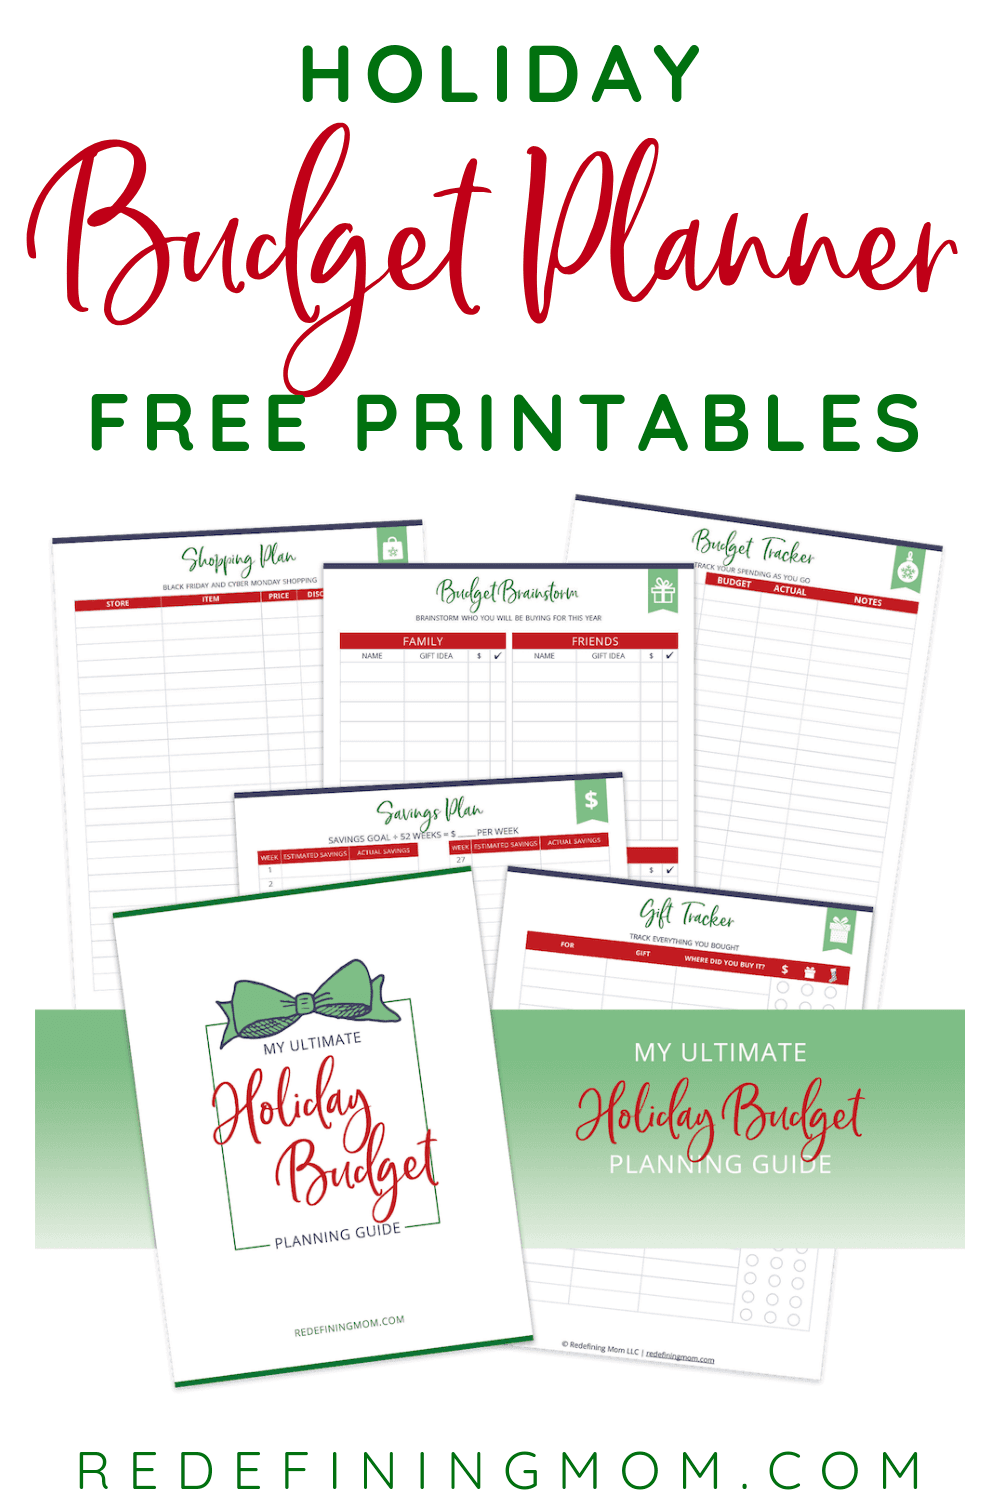 Download your free printable holiday budget planner. Getting organized for the holiday season has never been easier. Enter your name and email for instant access.